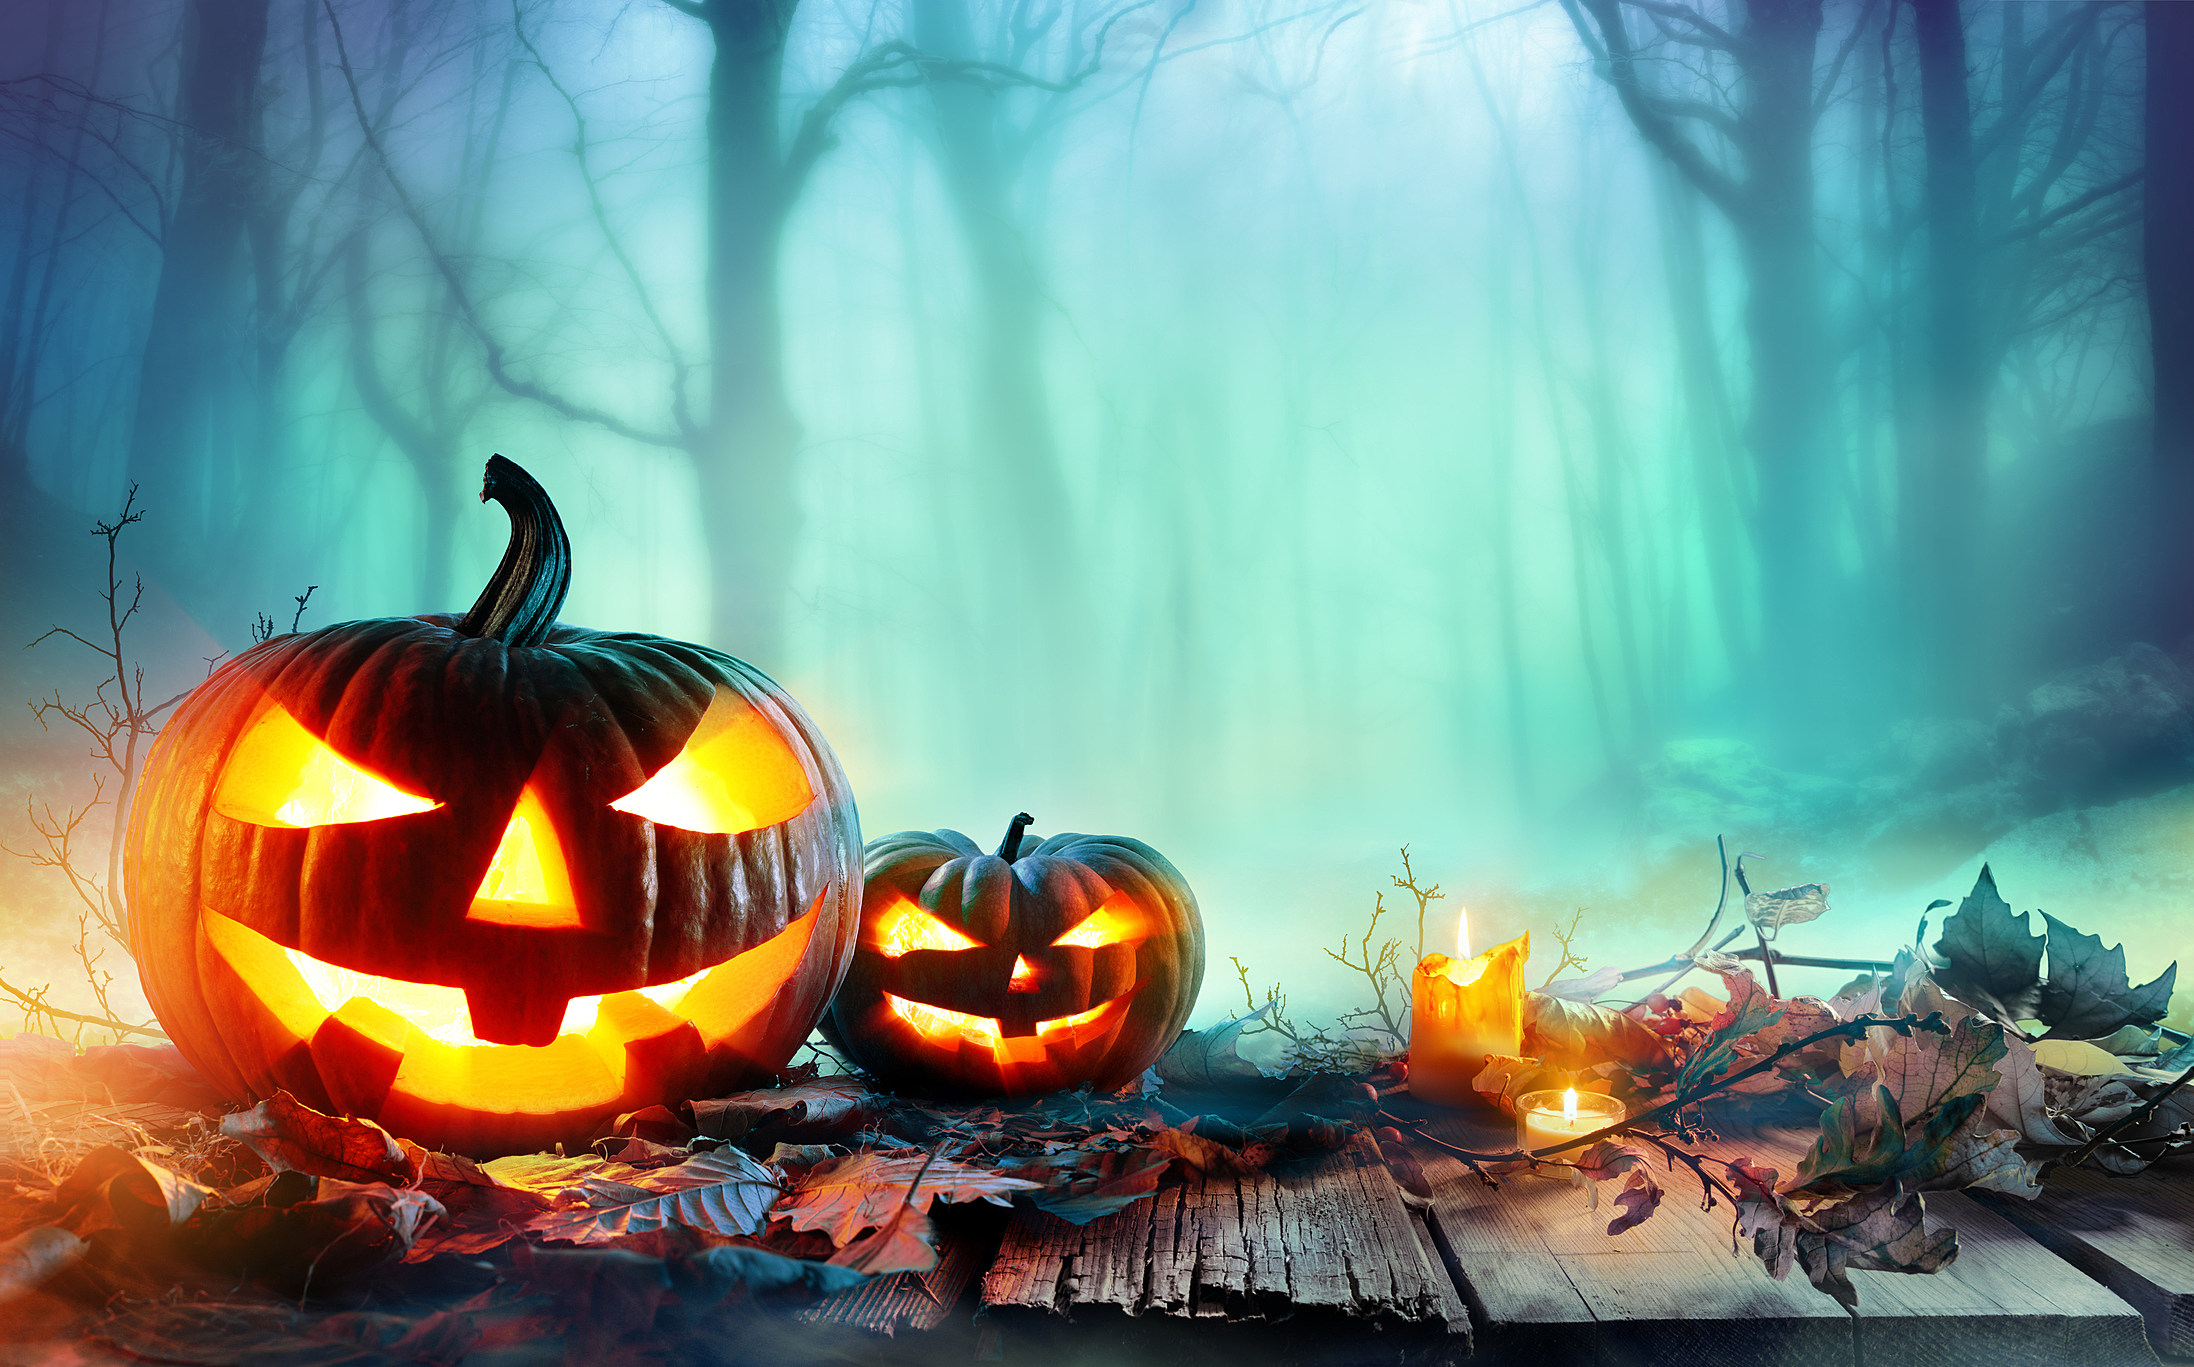 Haunted Halloween Attractions An Hour Or Less From St Cloud